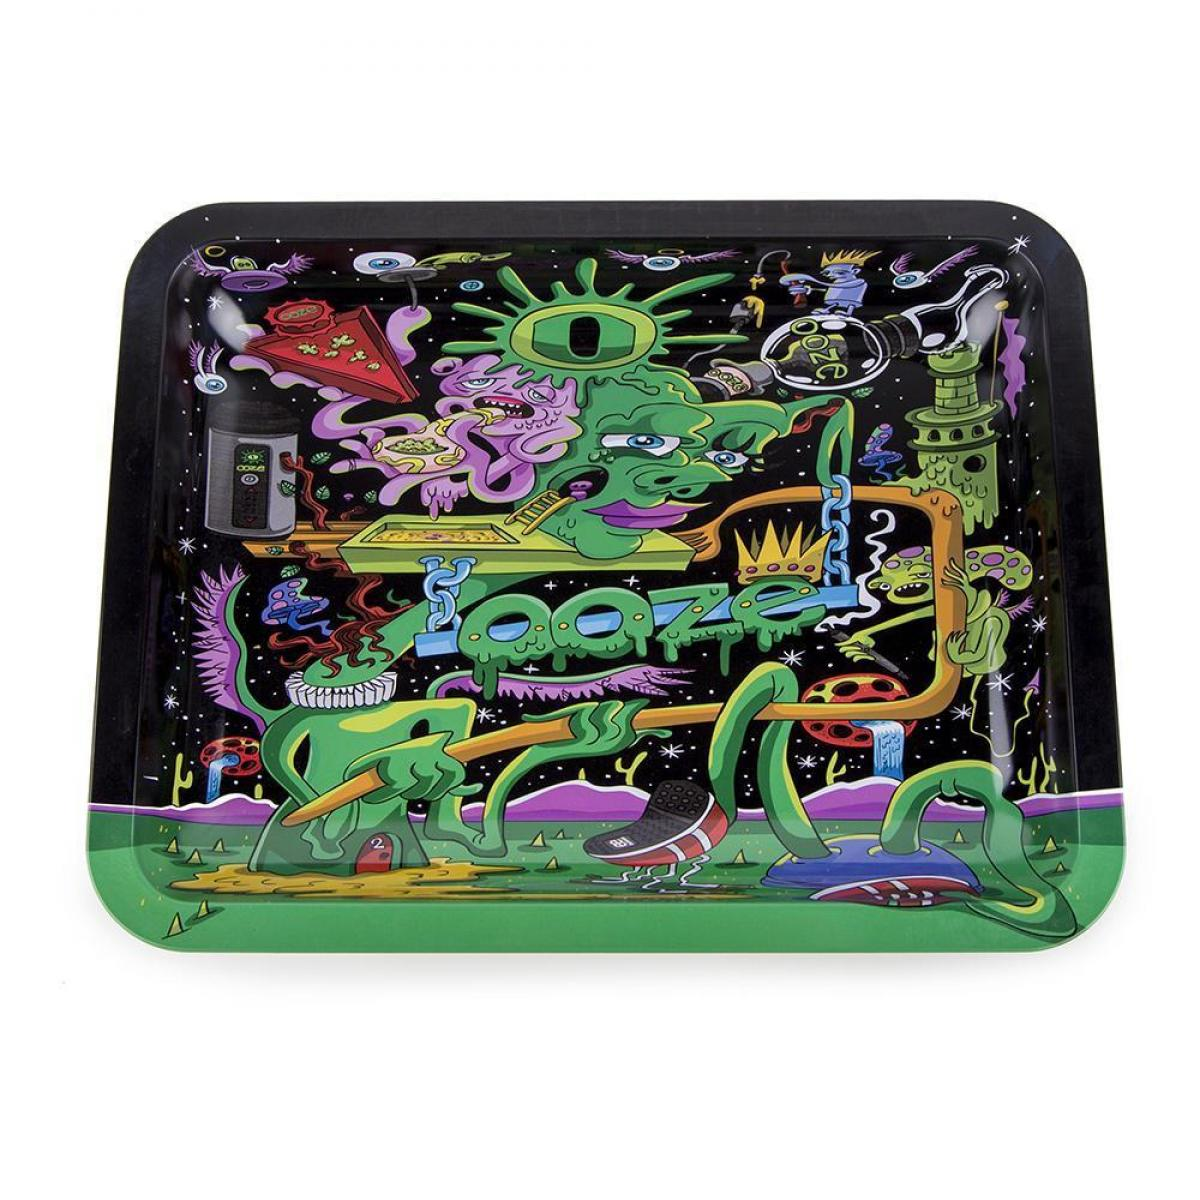 Ooze Rolling Tray - Black Factory - MEDIUM